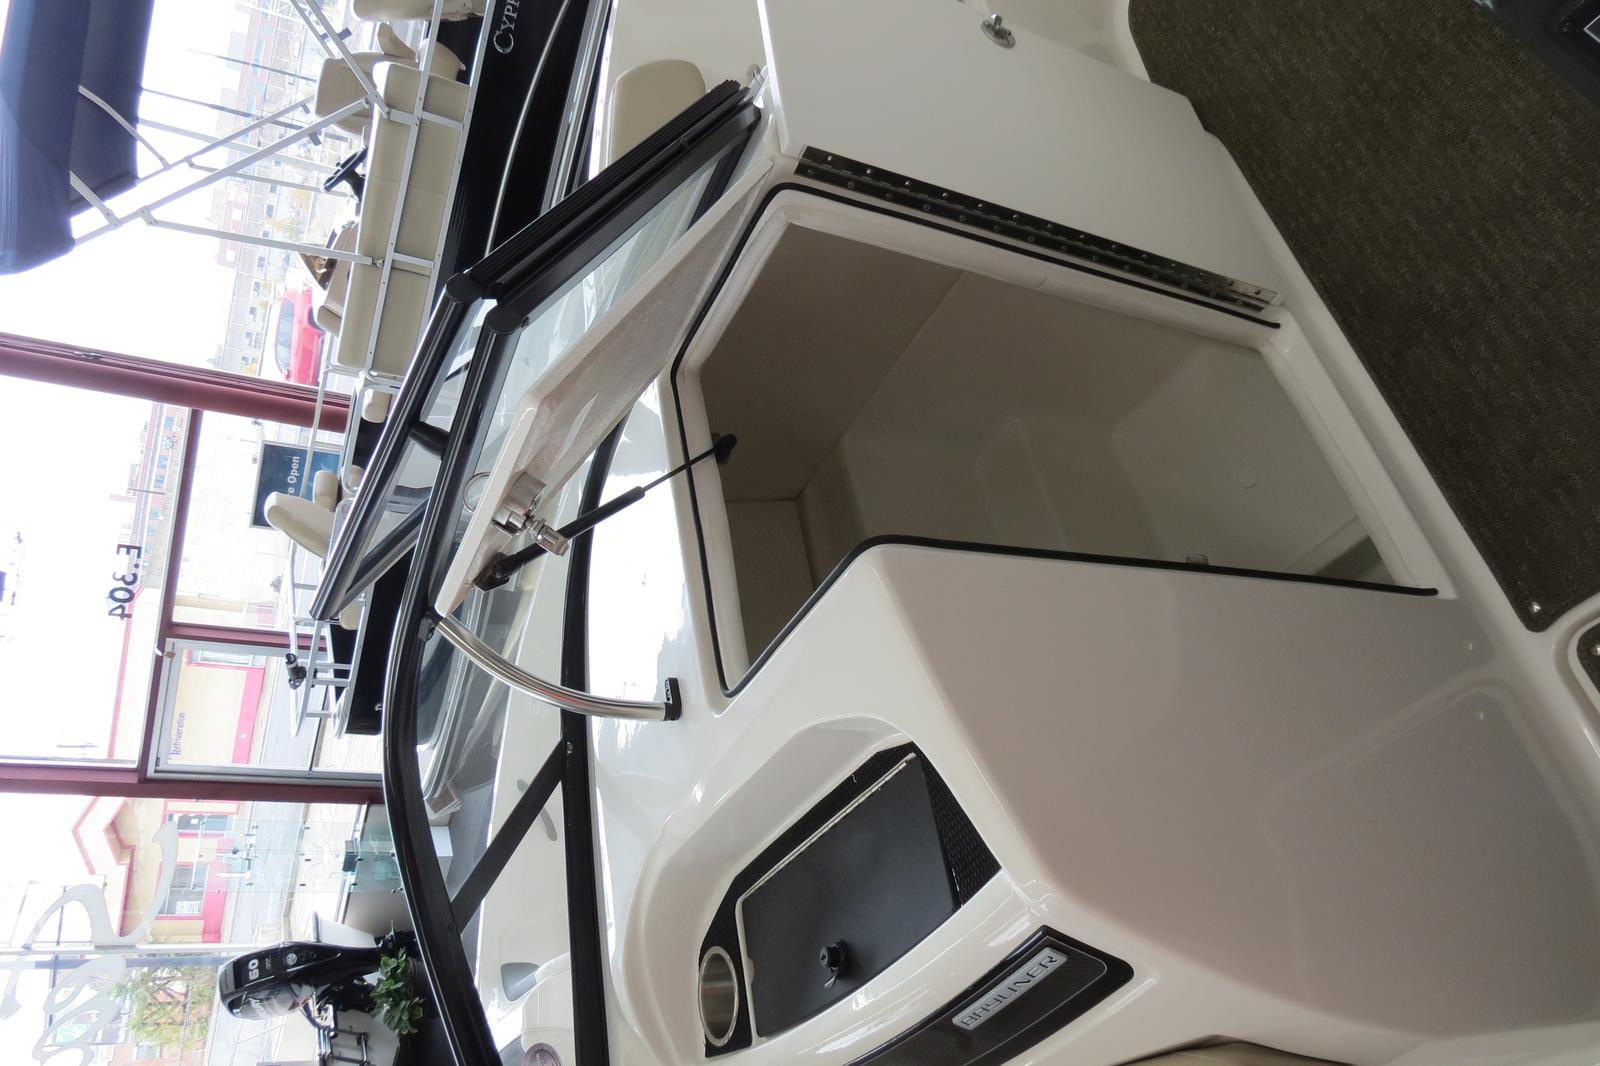 2019 Bayliner boat for sale, model of the boat is VR6 Bowrider & Image # 6 of 7